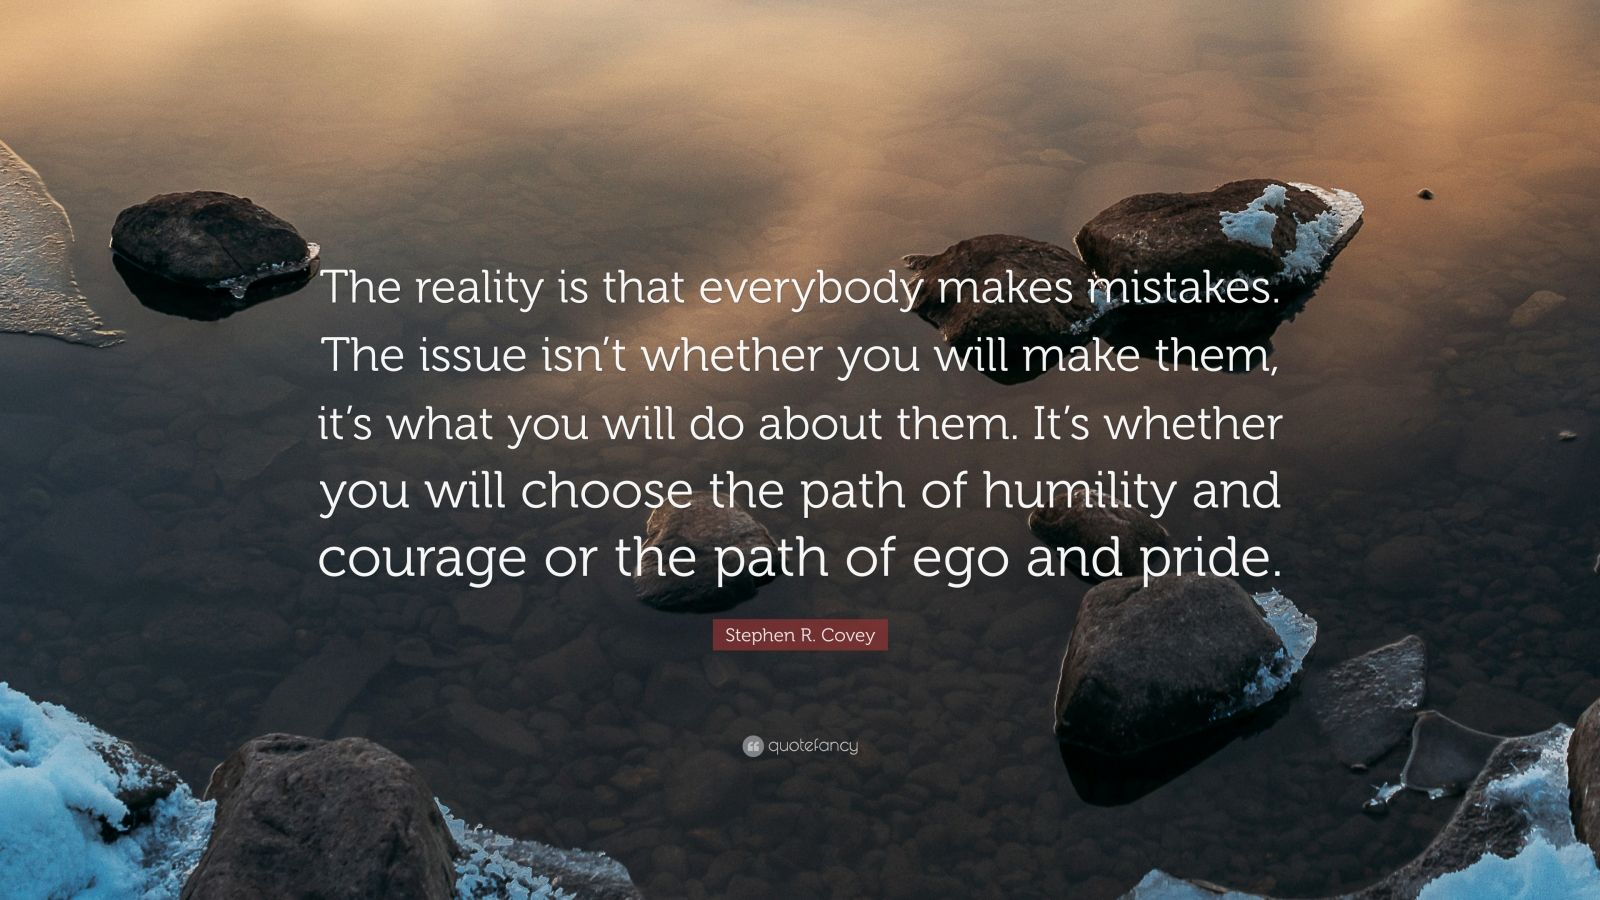 "Stephen R. Covey Quote: ""The reality is that everybody makes mistakes. The issue isn't whether you will make them, it's what you will do about them. It's whether you will choose the path of humility and courage or the path of ego and pride."""